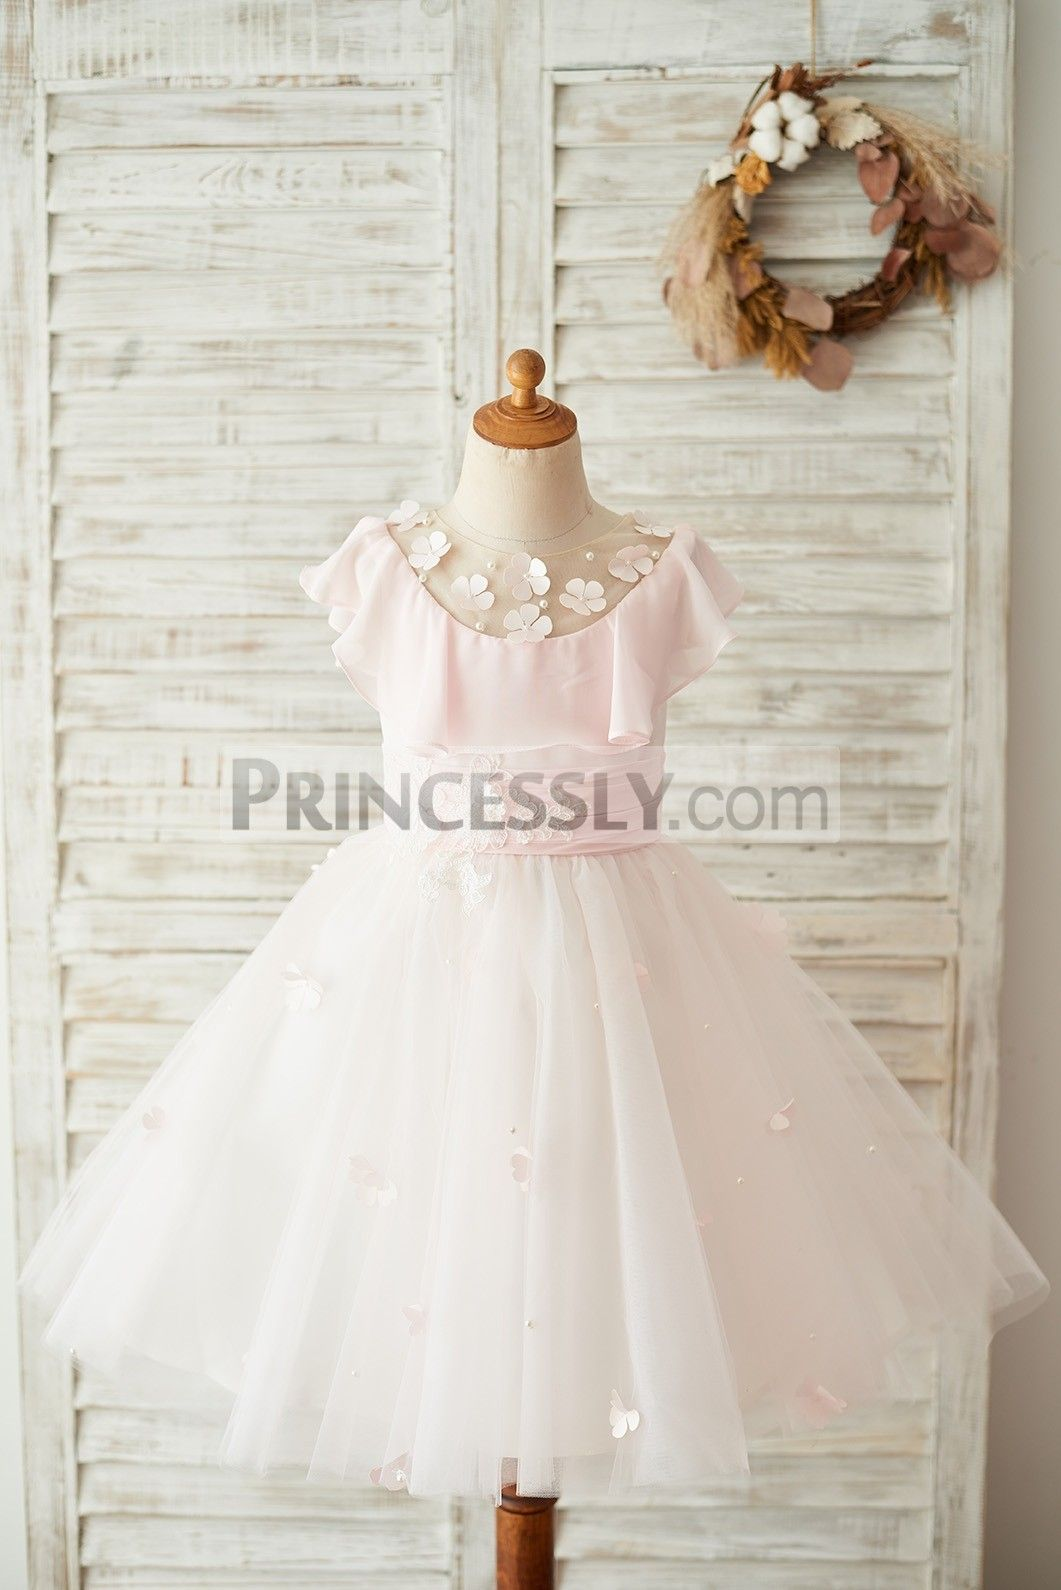 Pink chiffon tulle sheer neck wedding flower girl dress in